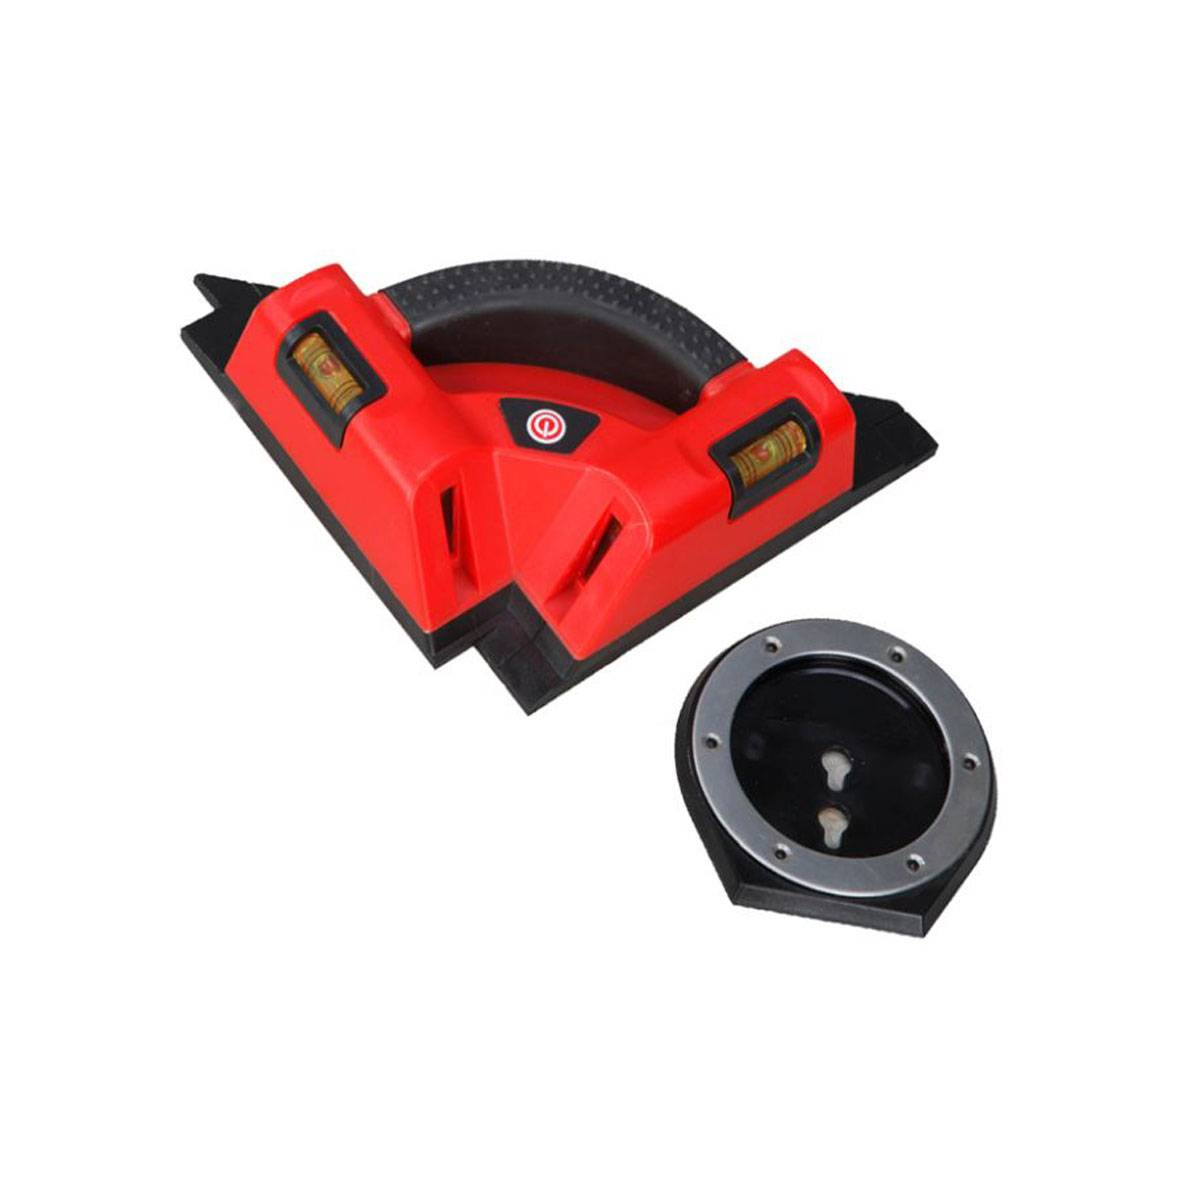 100% Original Factory Muti-Function Sliding Bevel -